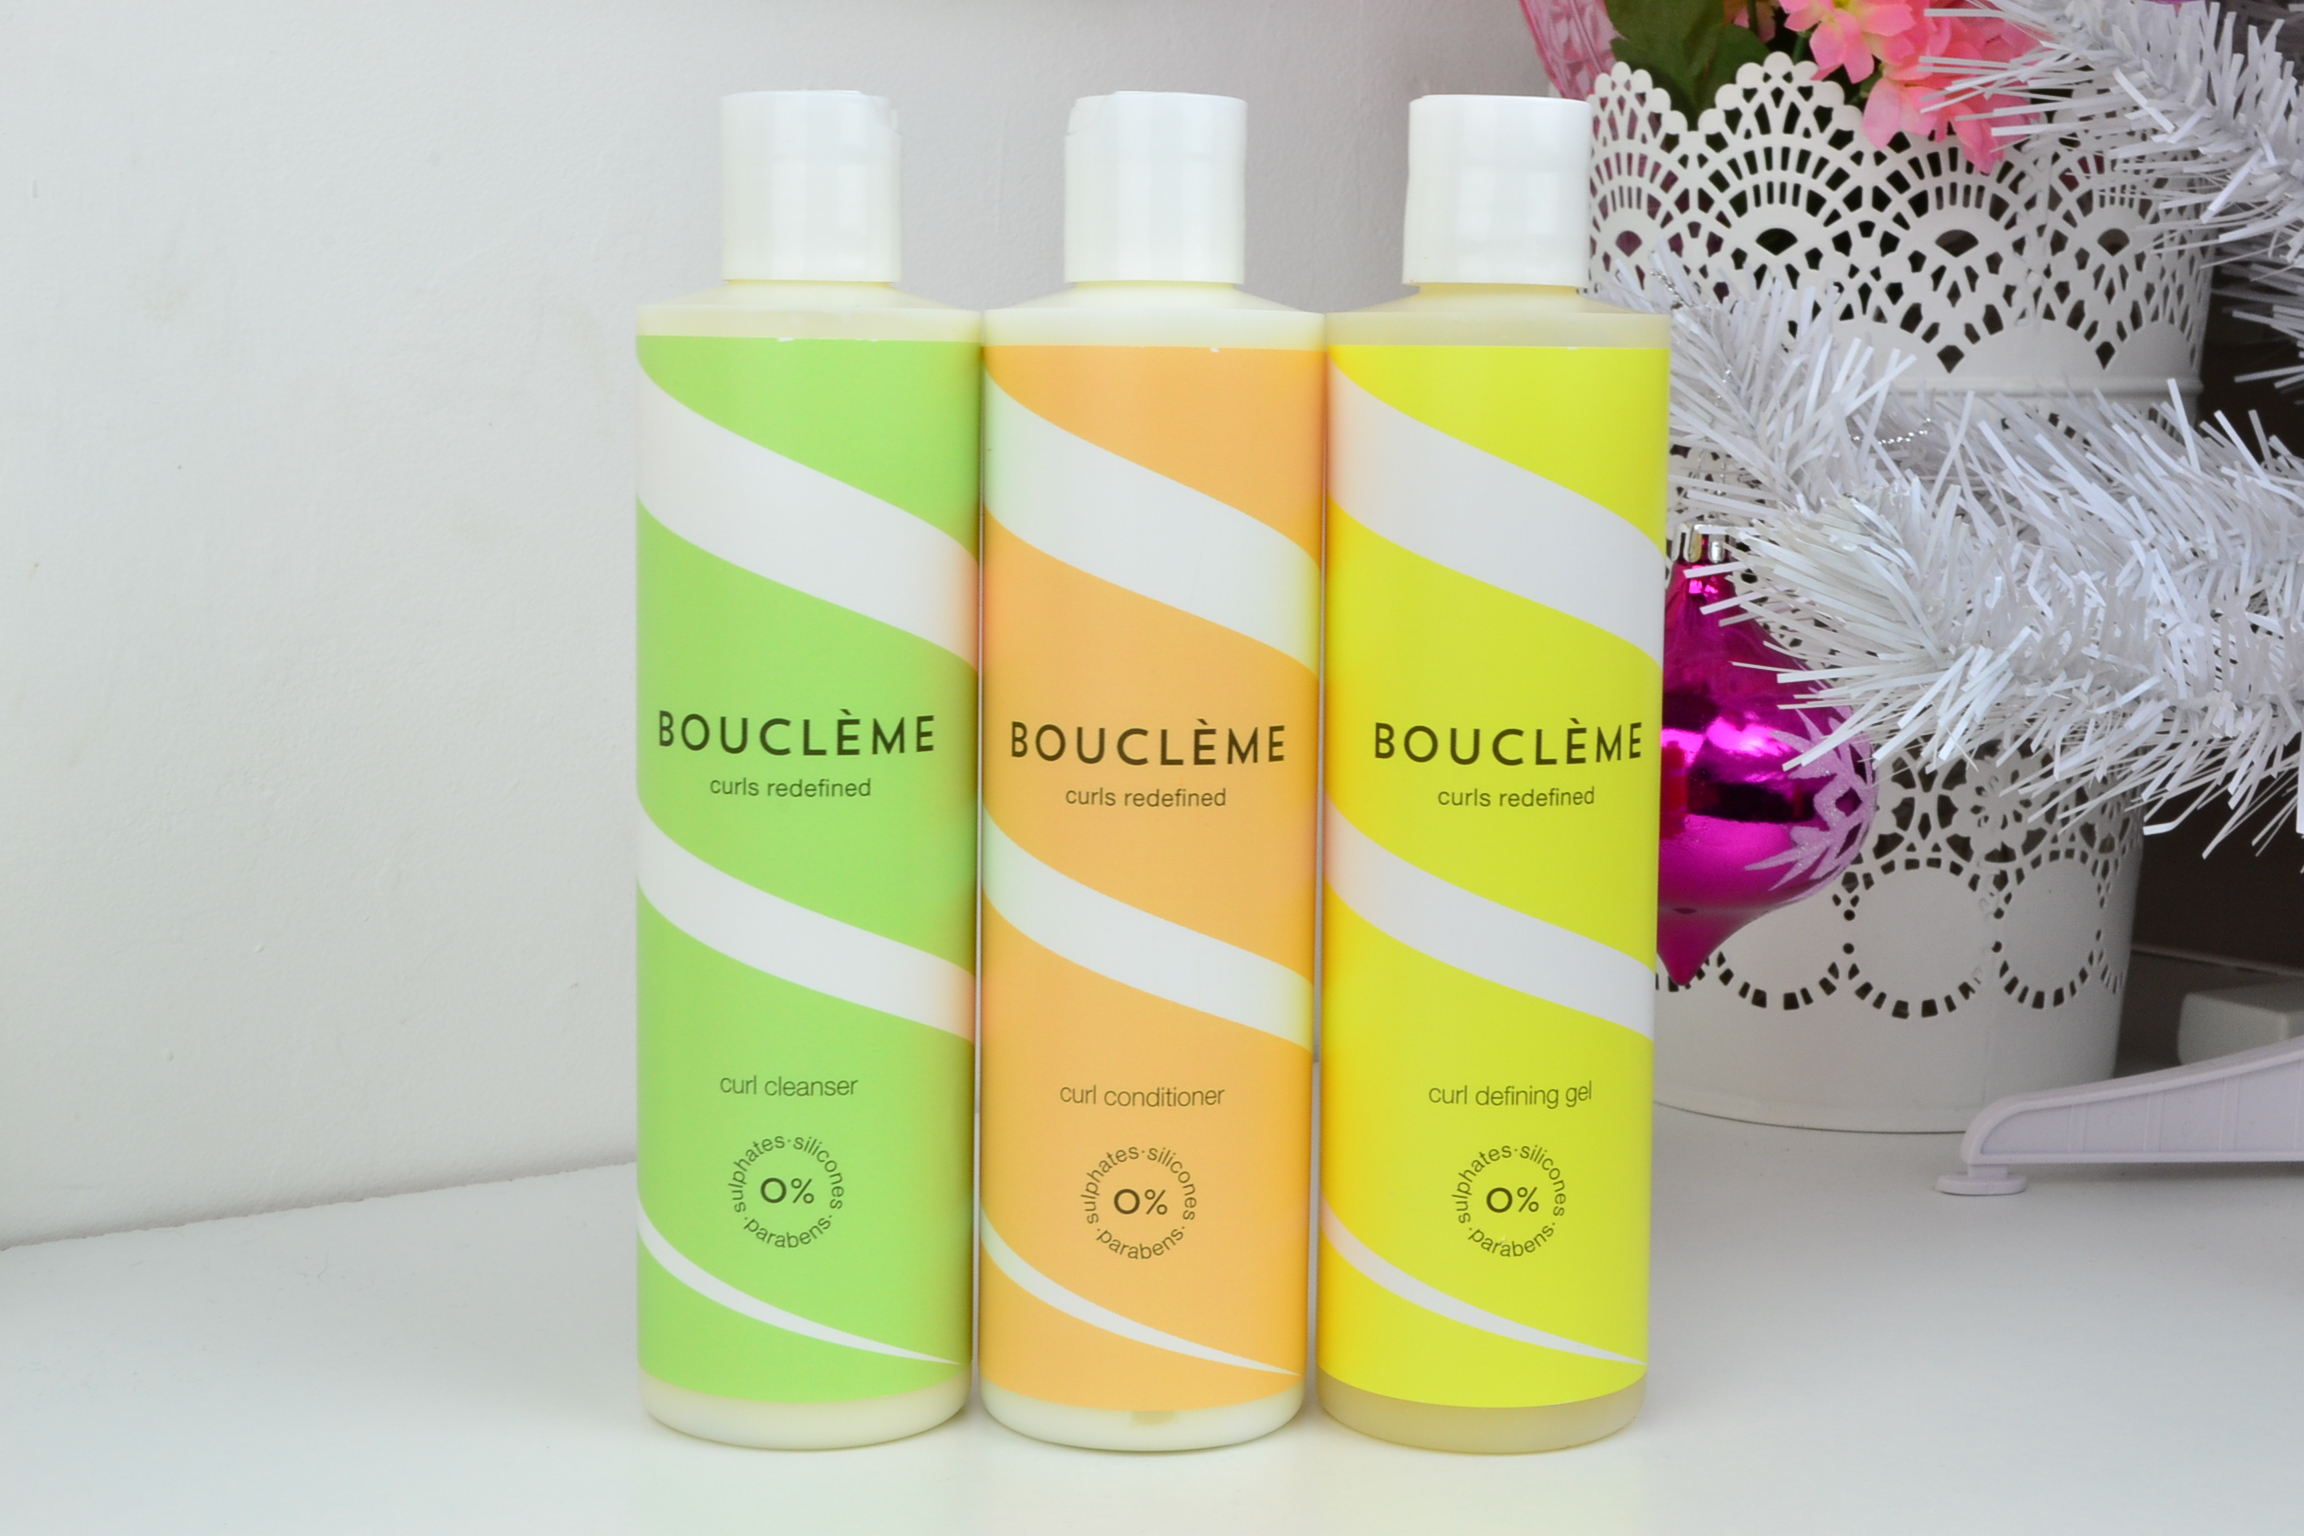 Boucleme Curls Redifined Shampoo Review